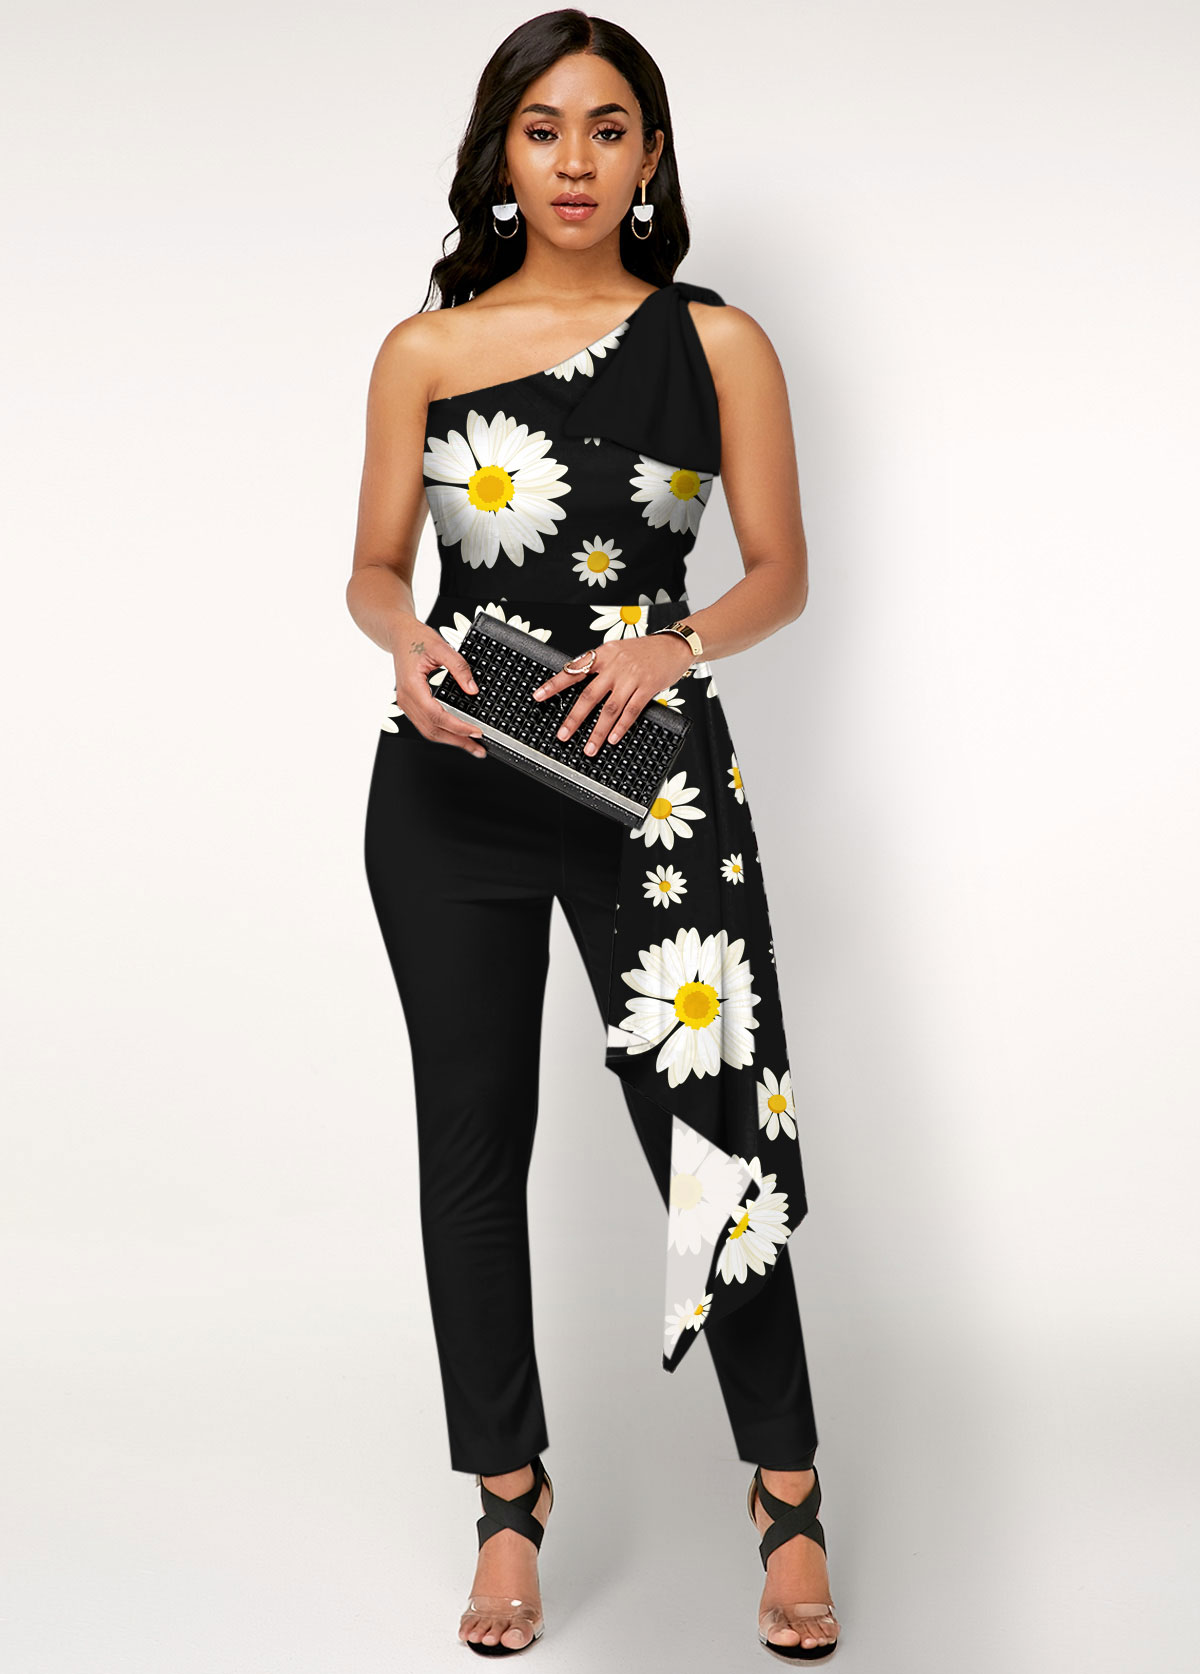 Daisy Print One Shoulder Overlay Jumpsuit